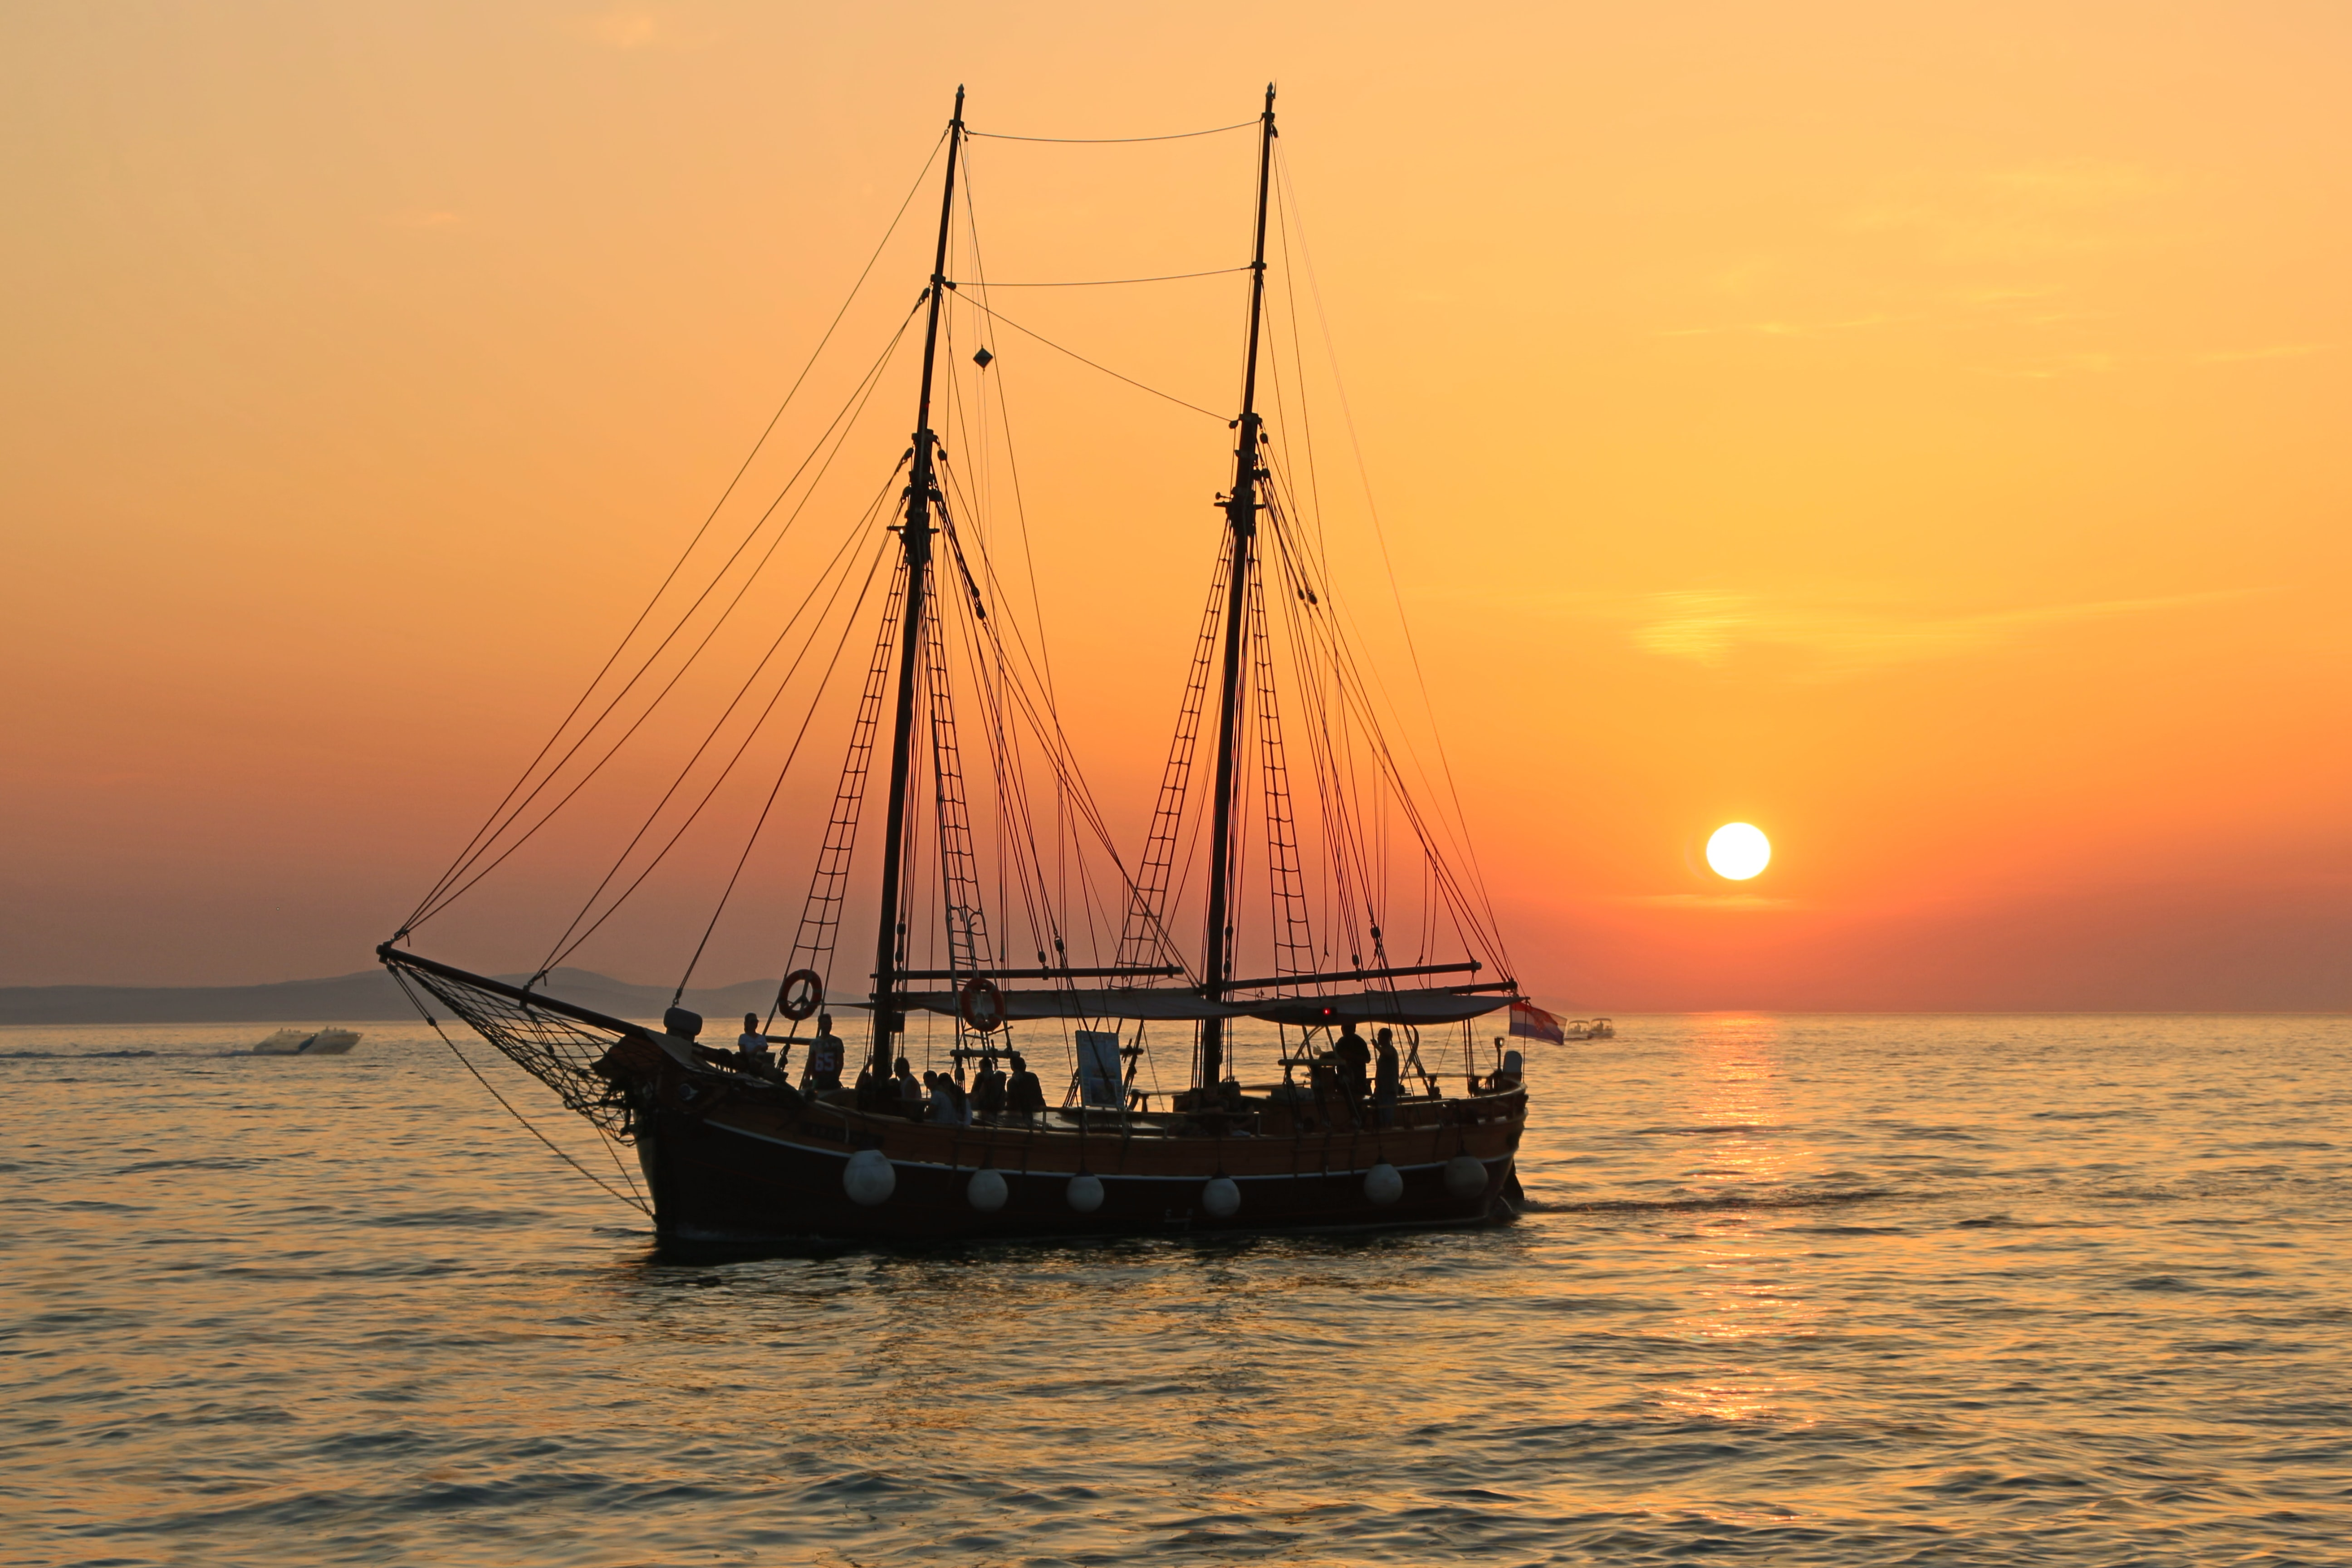 A sailboat on a tranquil sea as the sun sets in the distance